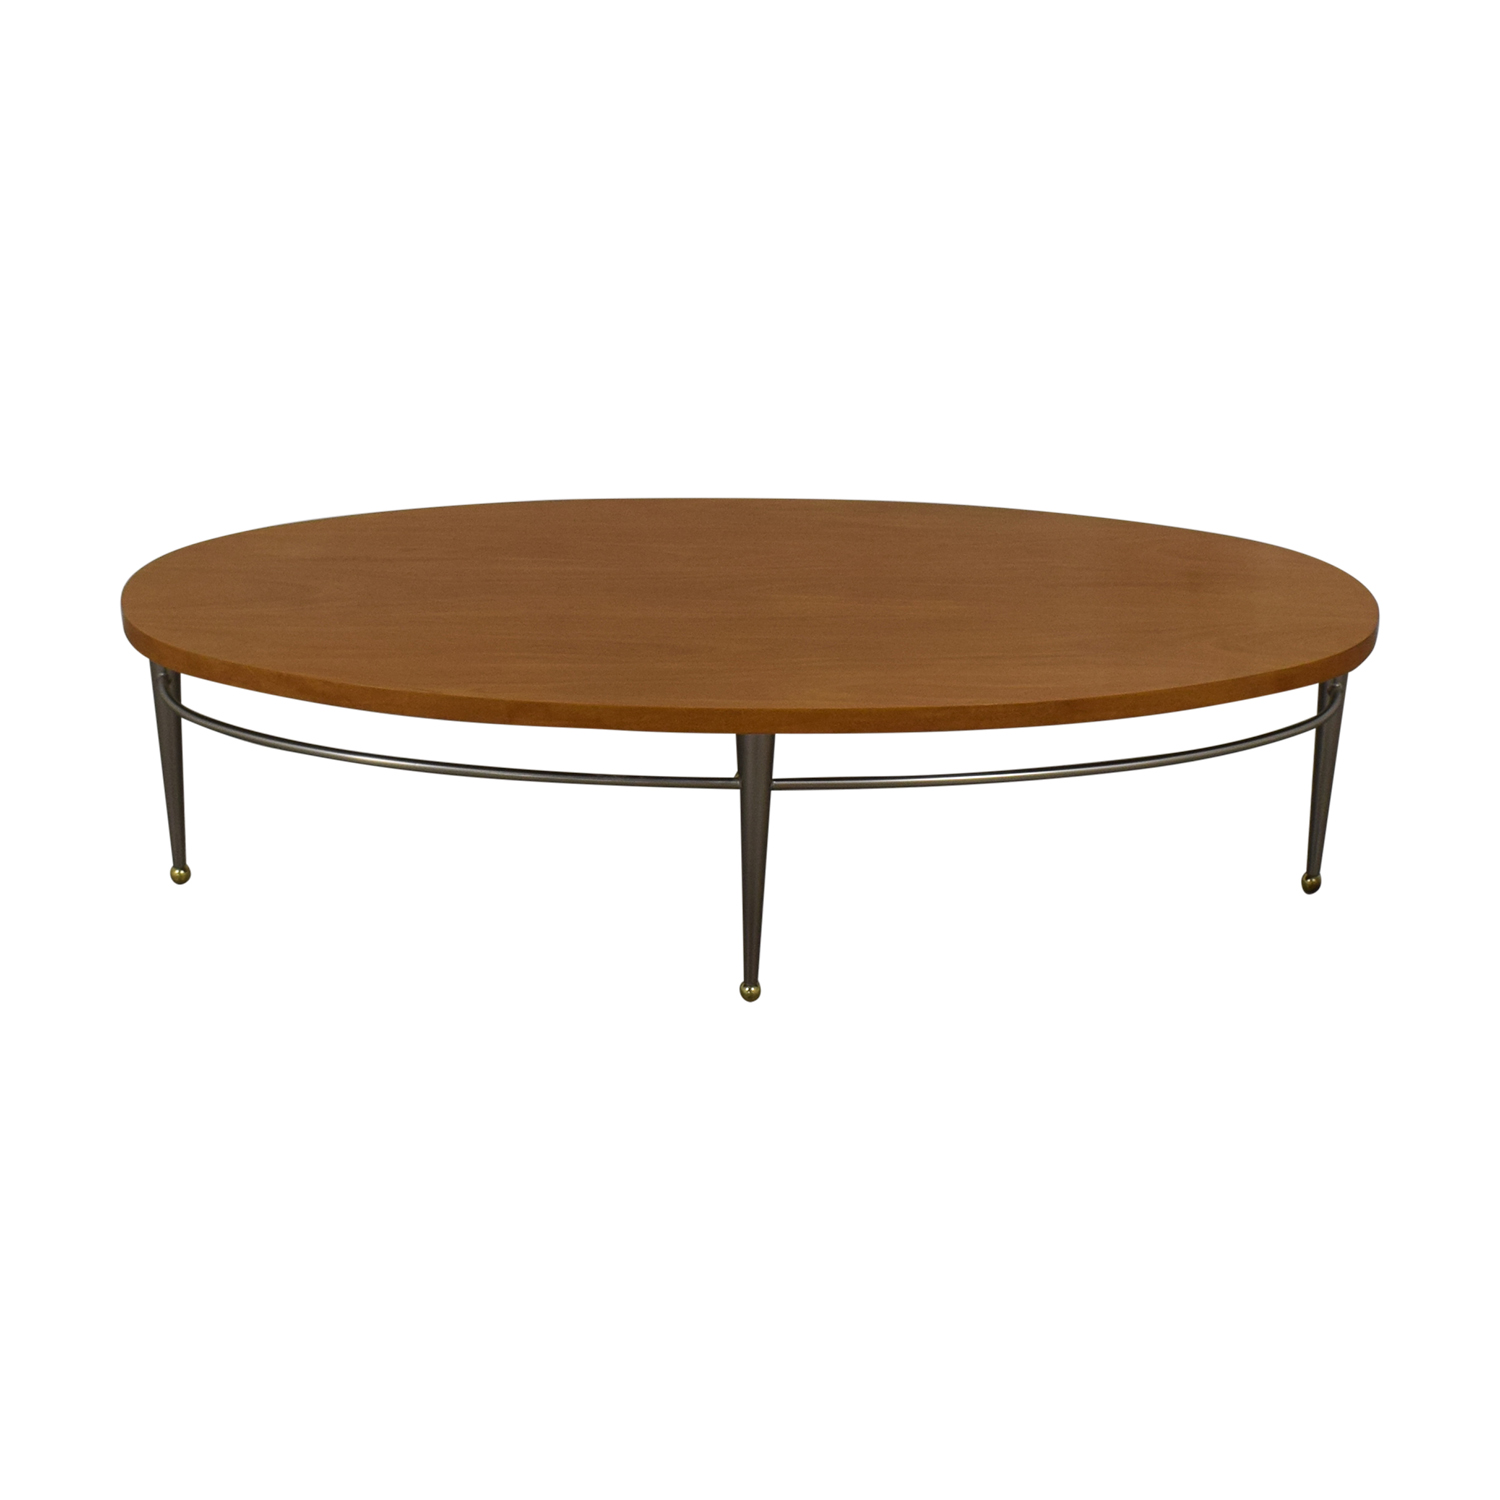 Ethan Allen Ethan Allen Round Wood Coffee Table on sale